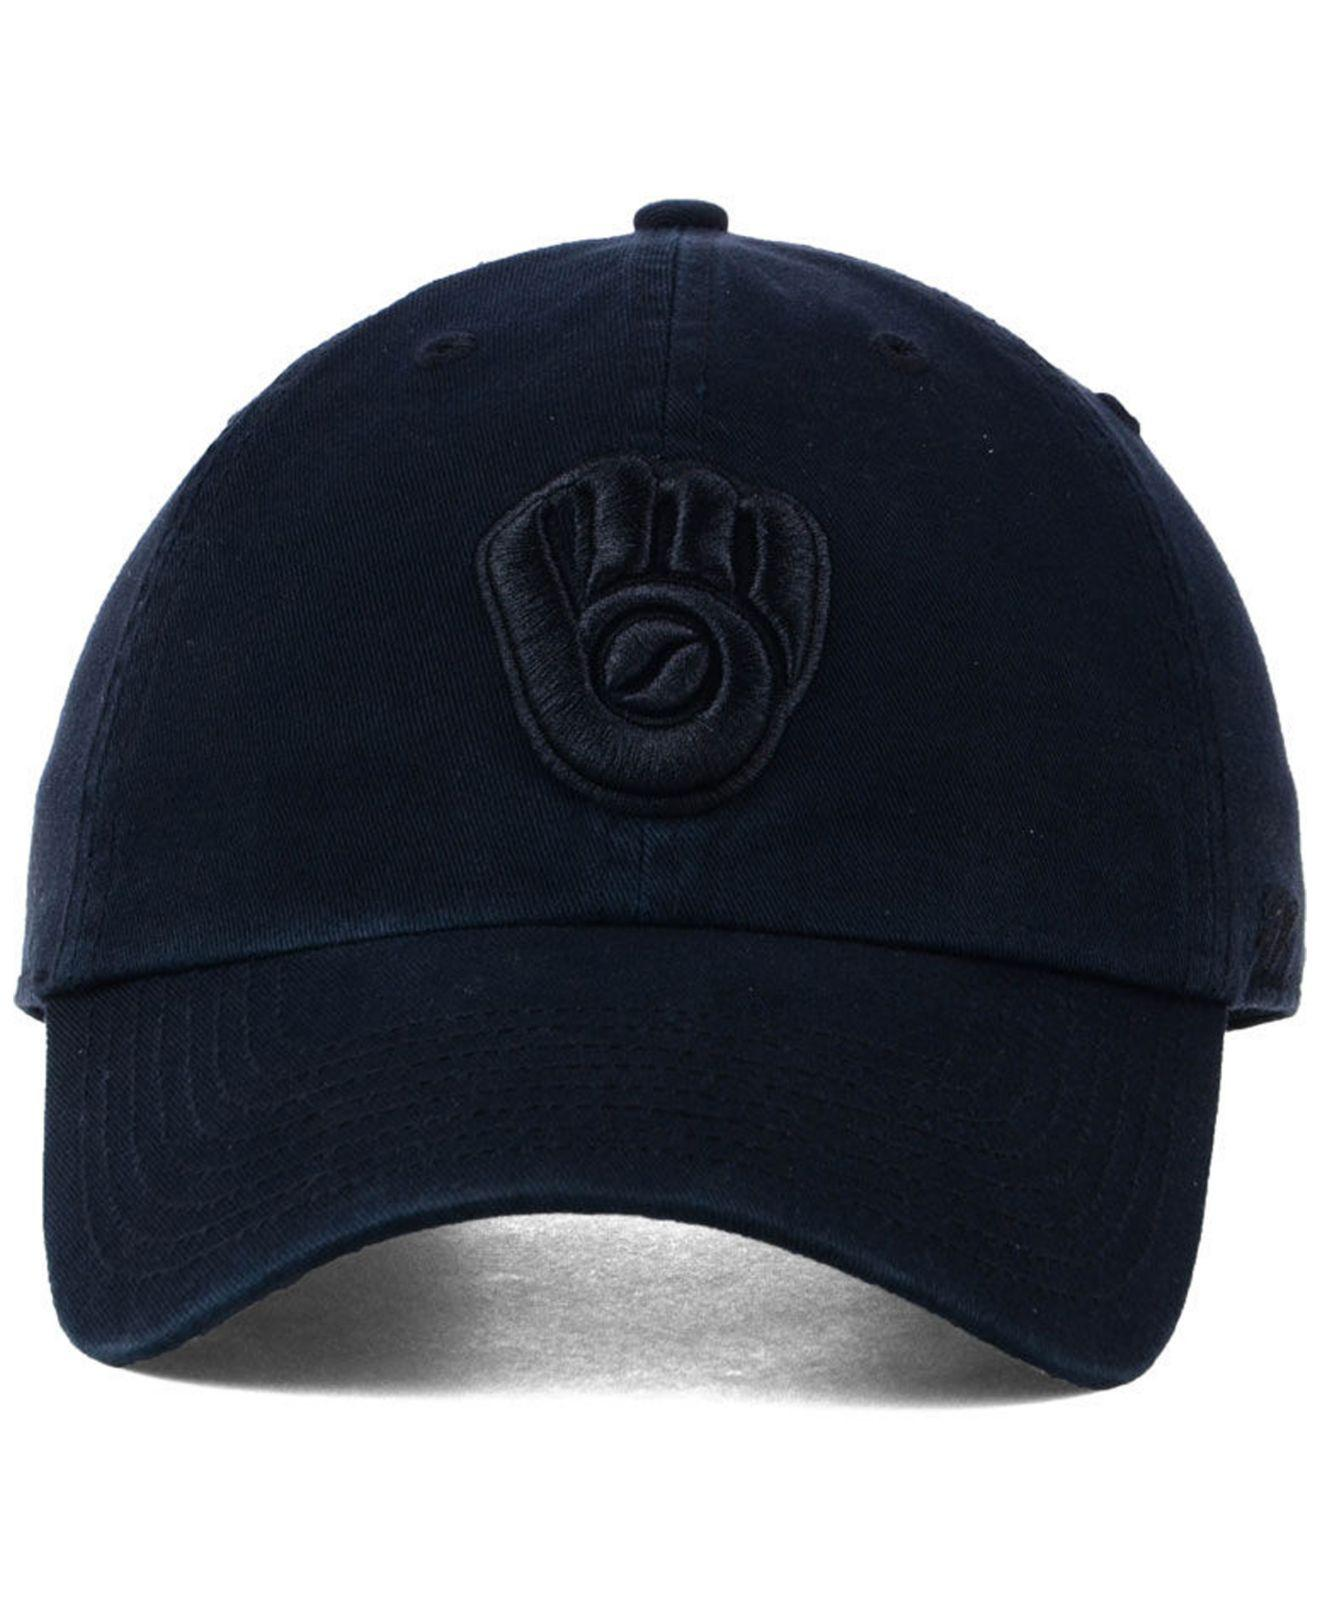 Lyst - 47 Brand Milwaukee Brewers Black On Black Clean Up Cap in Black for  Men 60b76454d07b